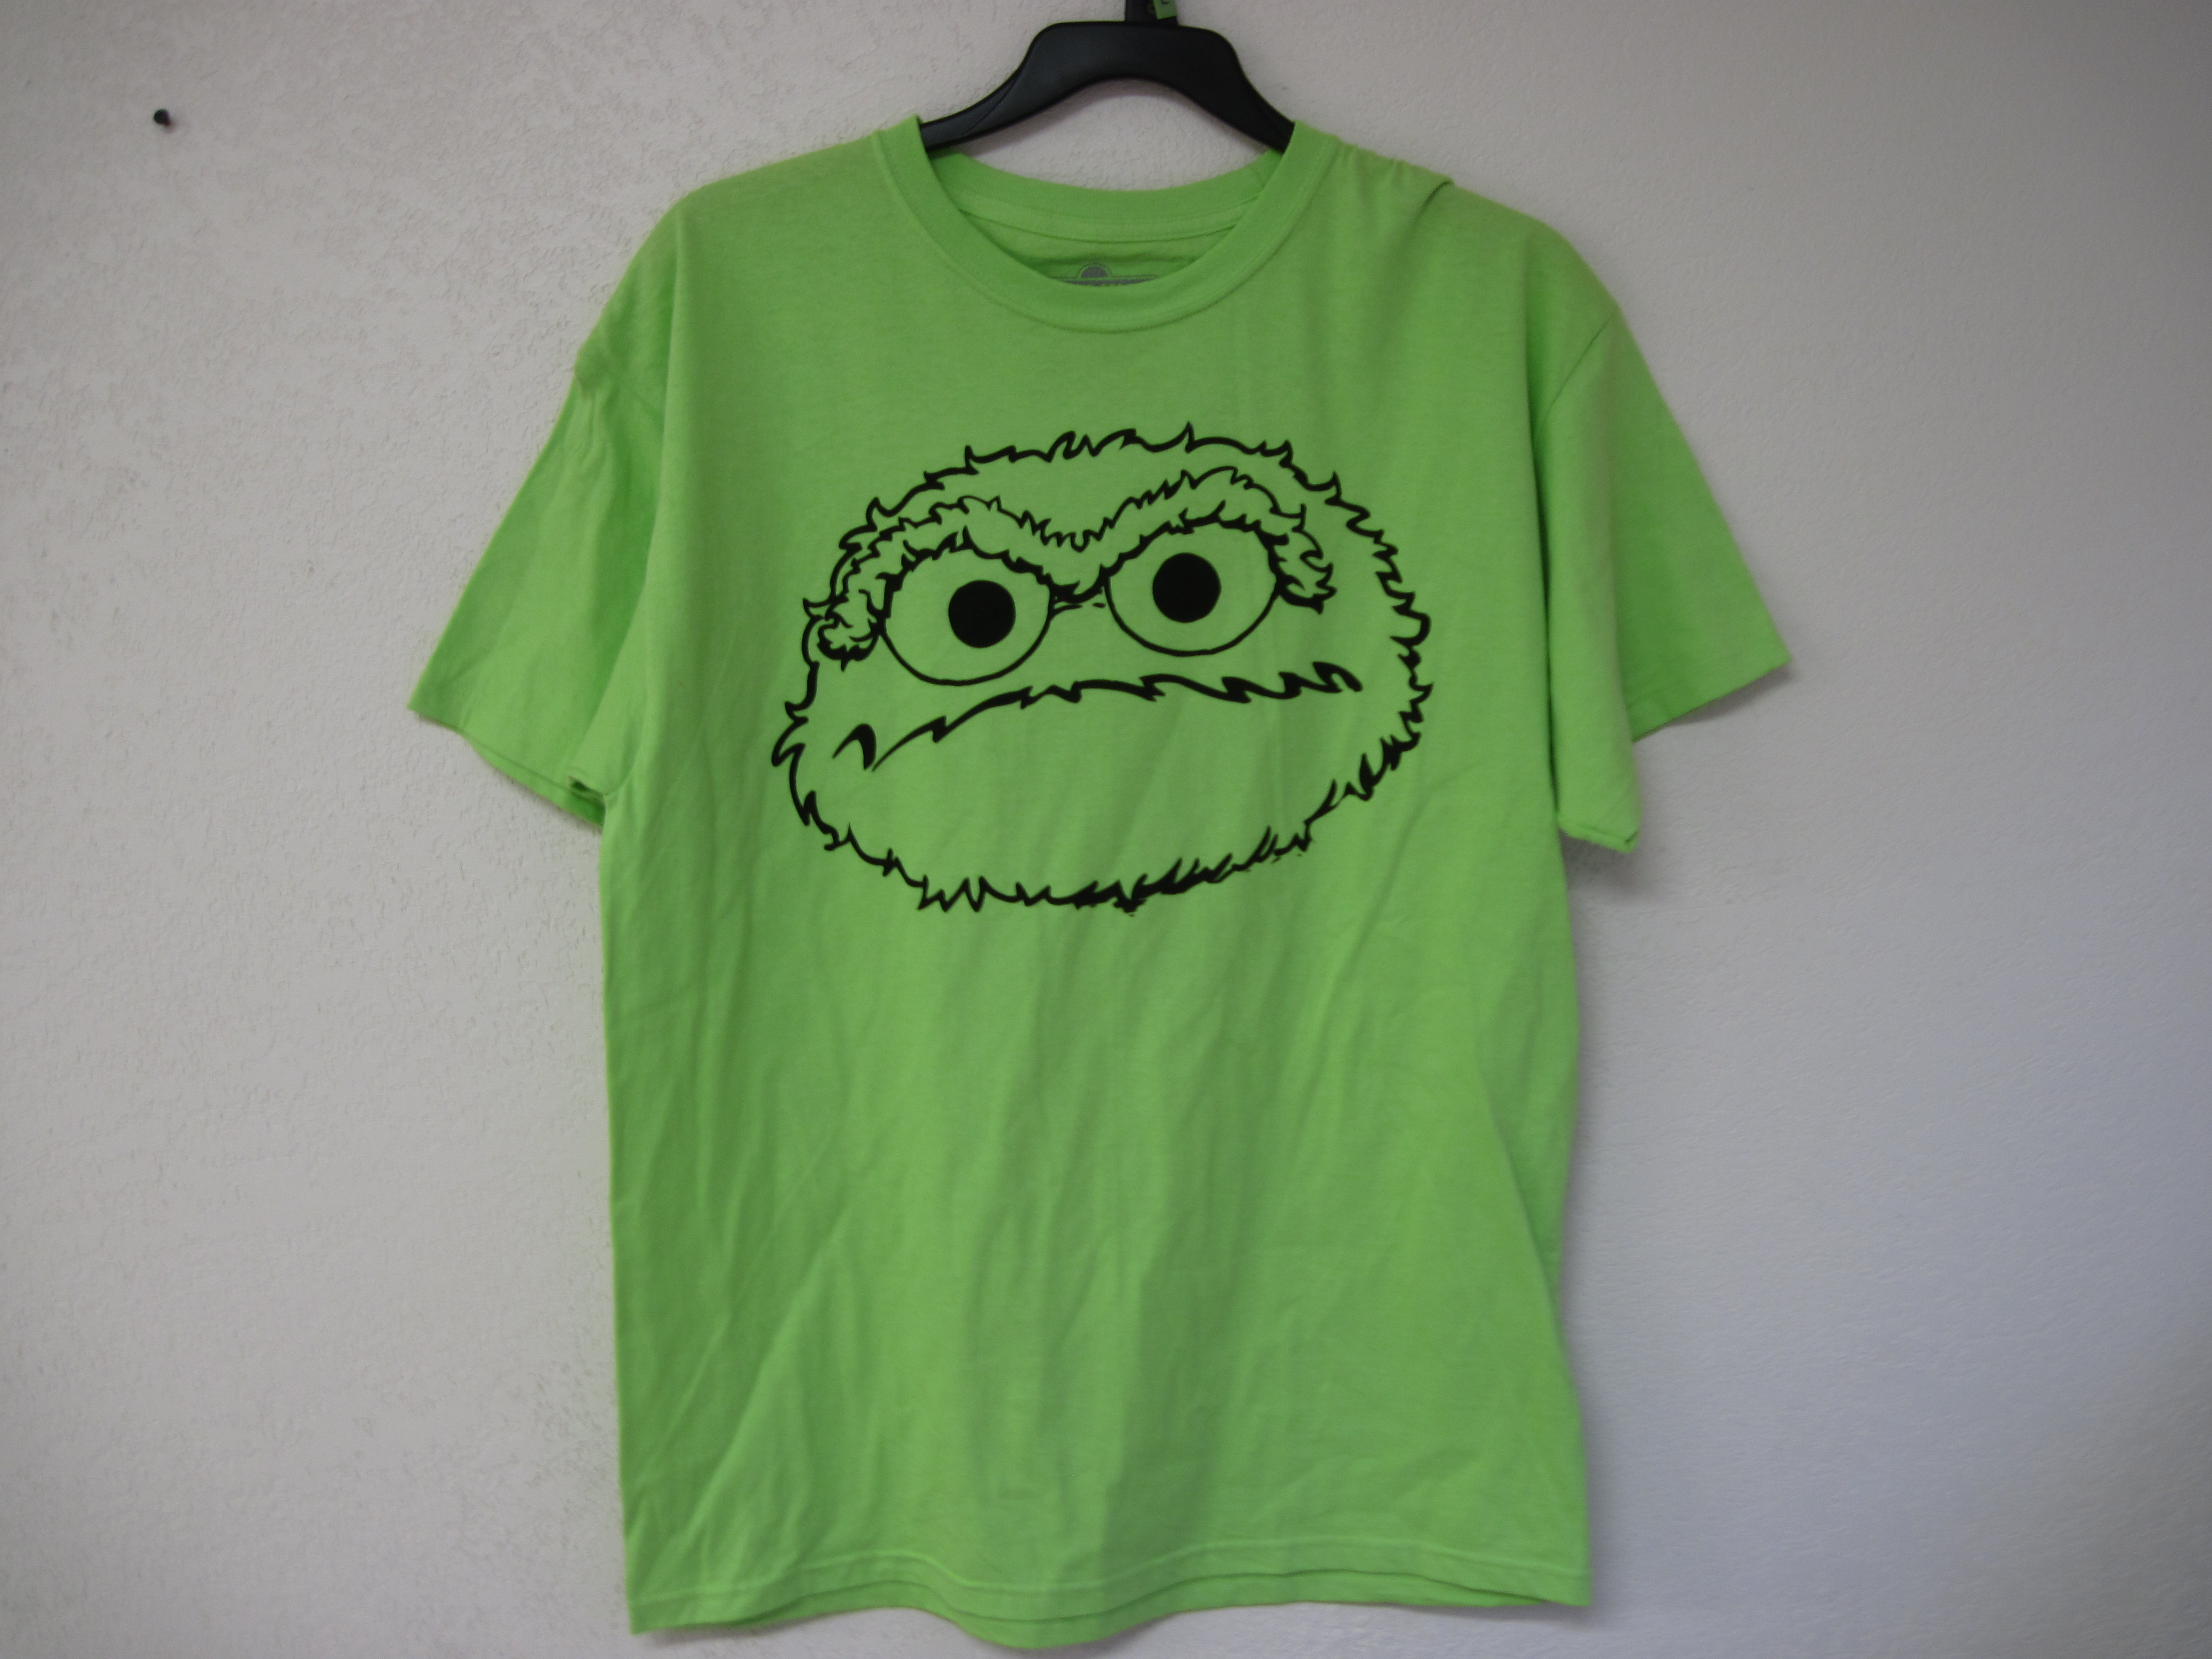 Cookie Monster Graphic Screen Shirt (lime green) Sz Lg. Junior